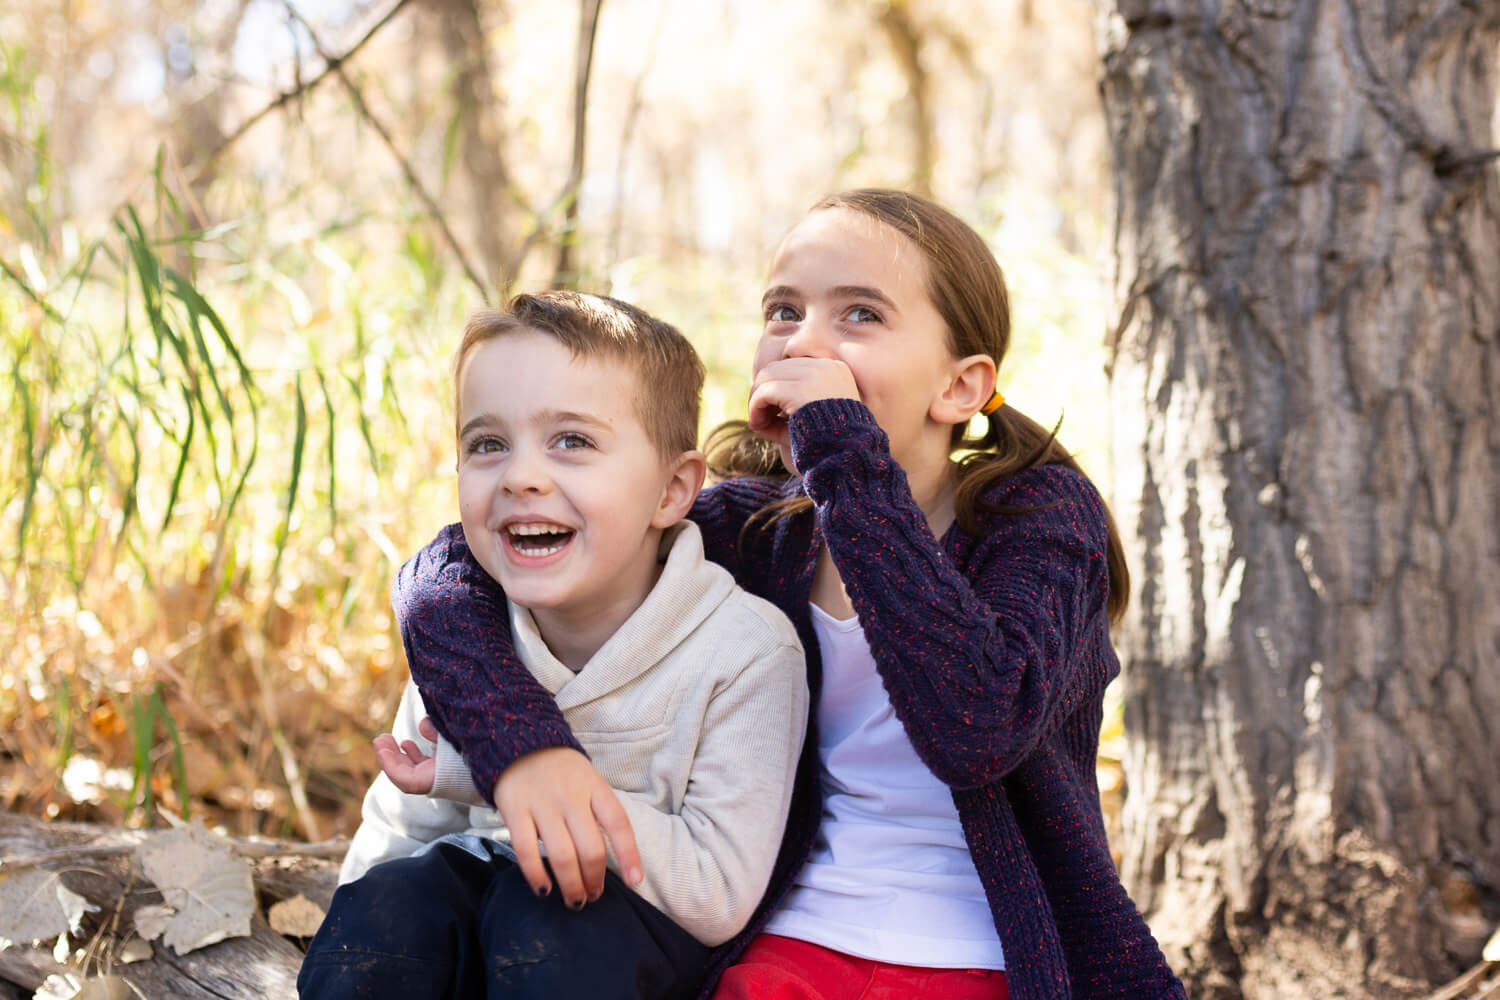 Portrait of a brother & sister sitting side by side on a log, looking away from the camera and laughing